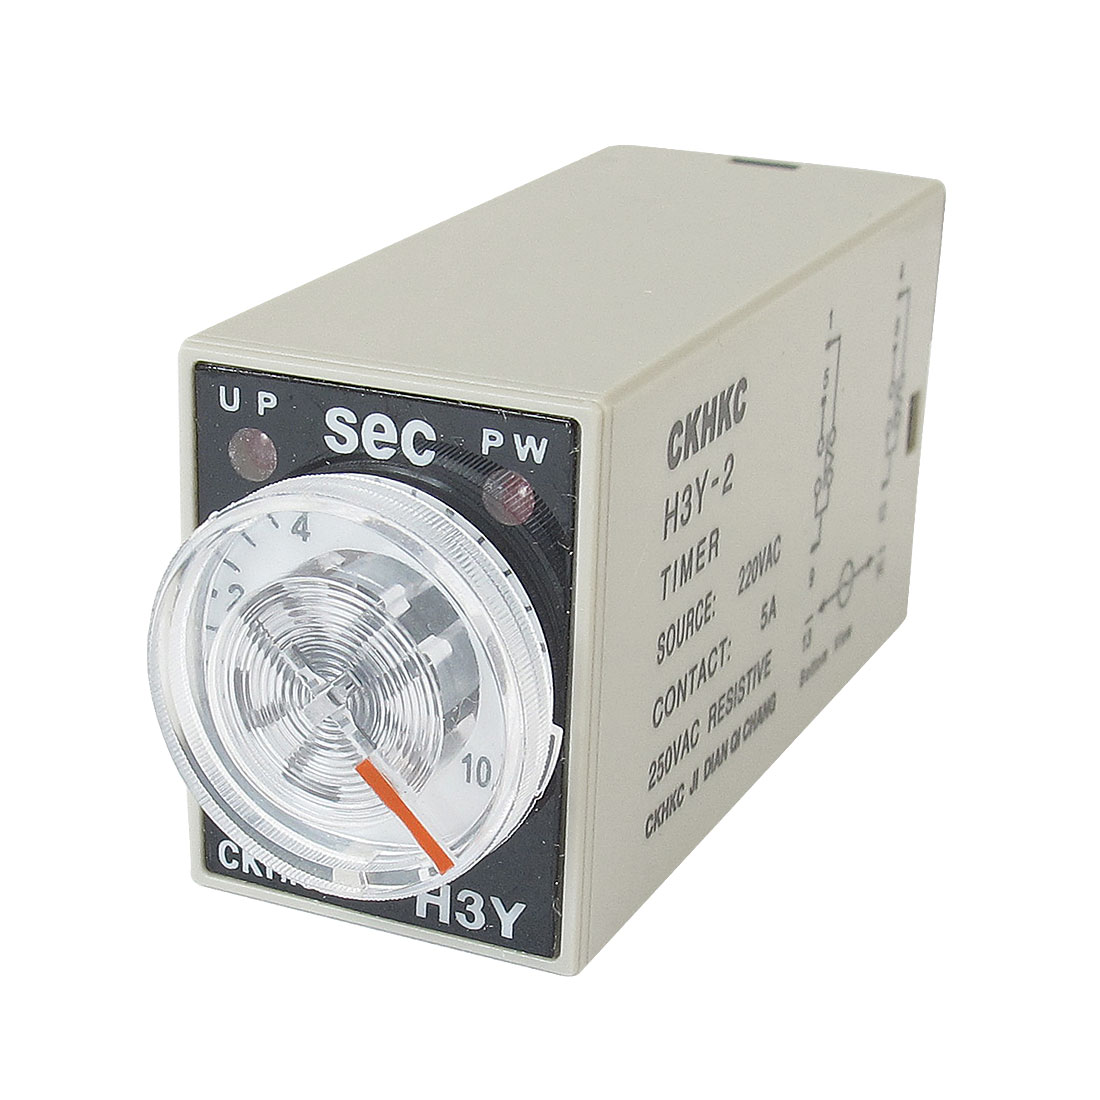 H3Y-2 AC 220V DPDT 0-10 Seconds 10S 8 Pins Power on Time Delay Relay